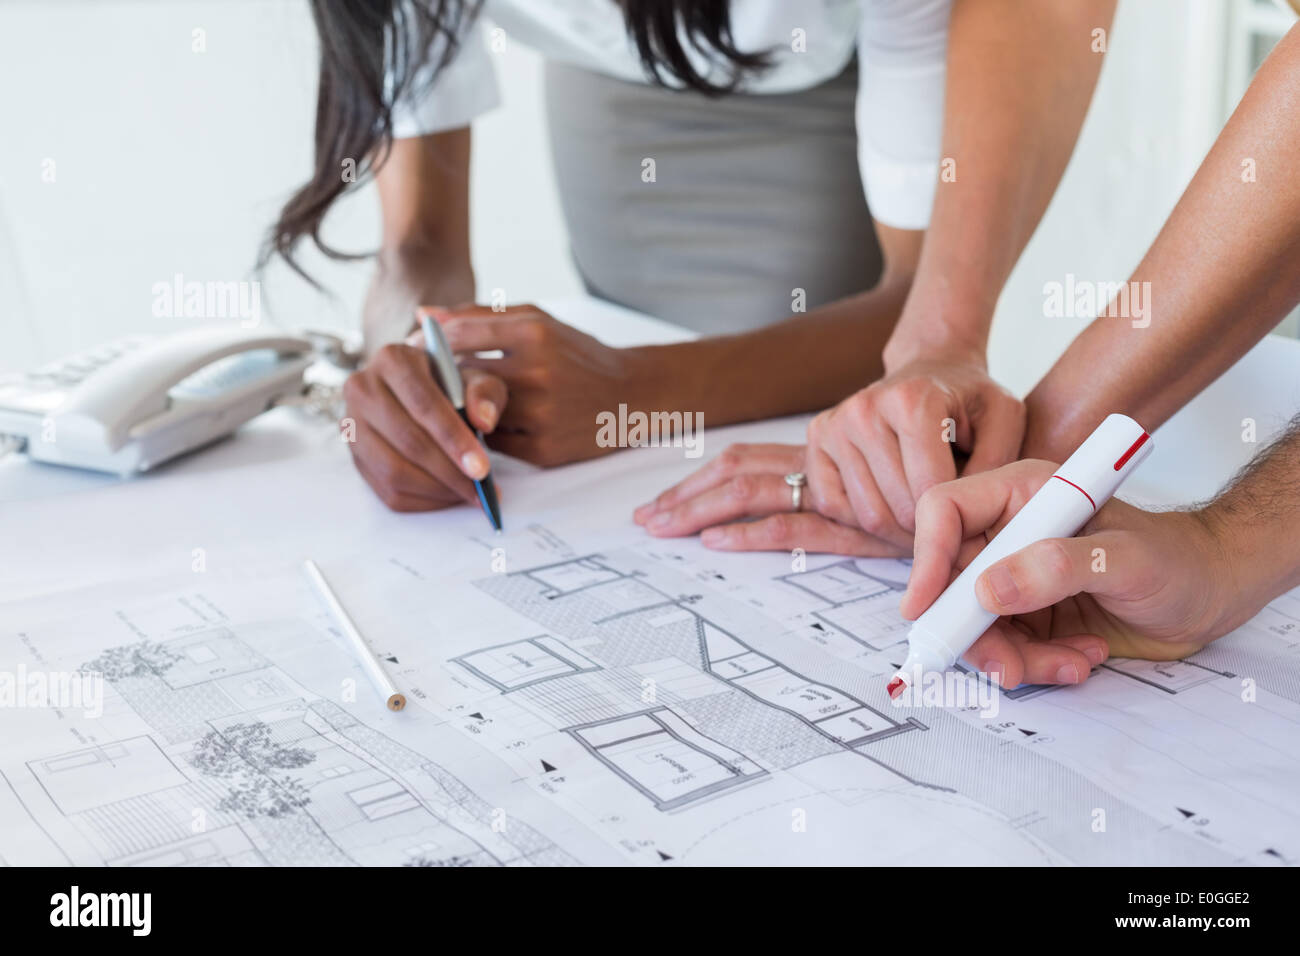 Coworkers working on blueprints together - Stock Image